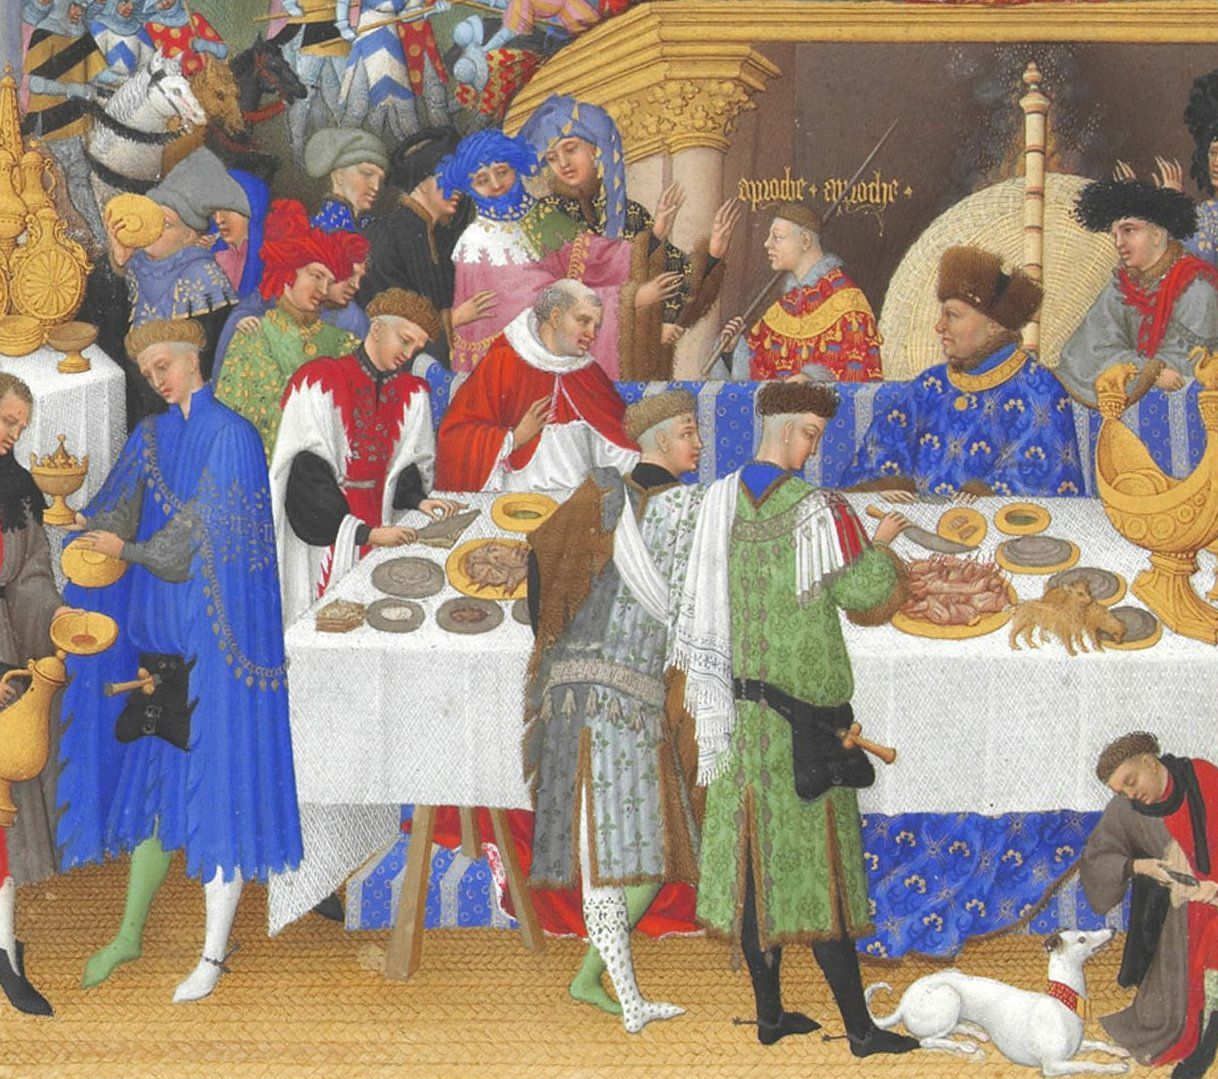 A Medieval Christmas: Celebrating The Holiday In The